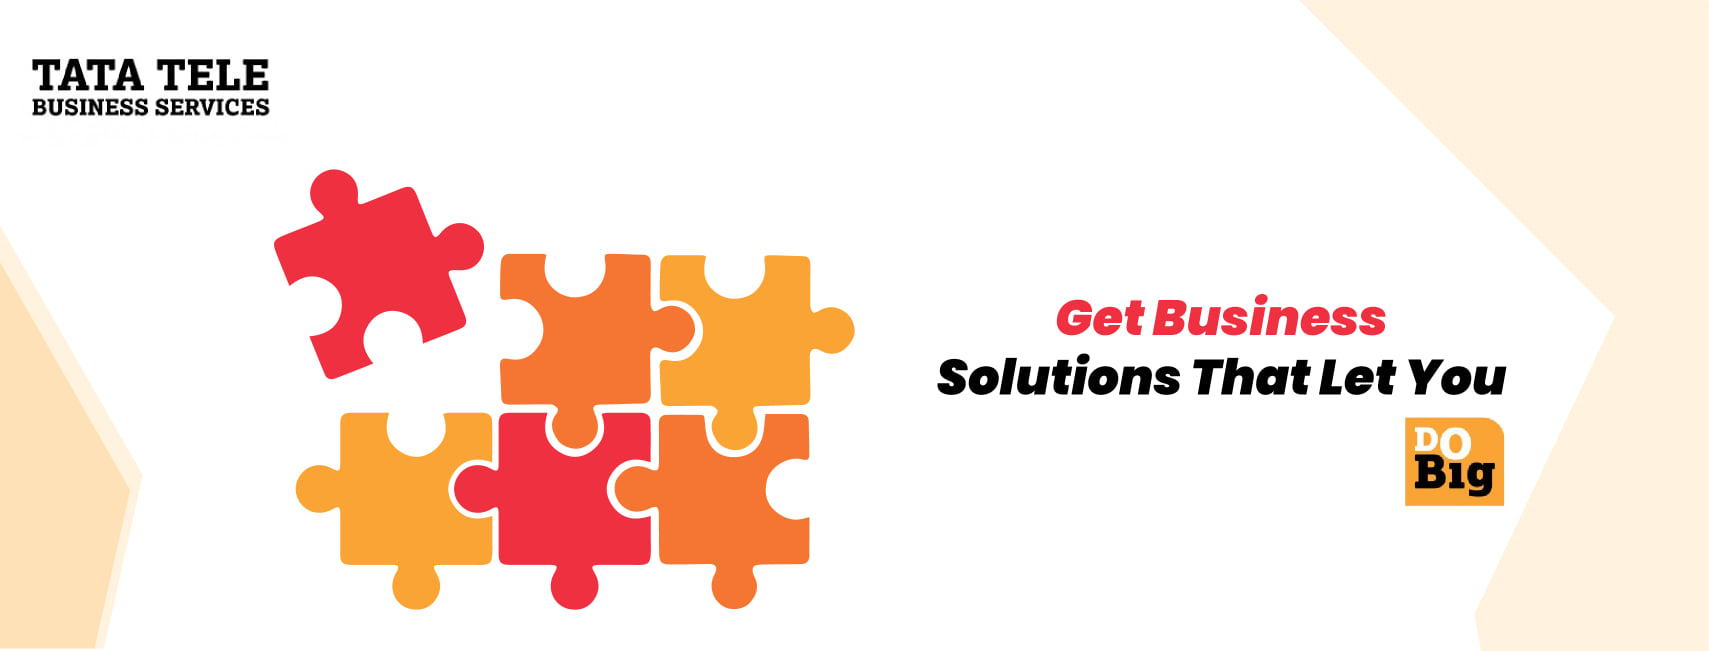 End-to-end Business Solutions